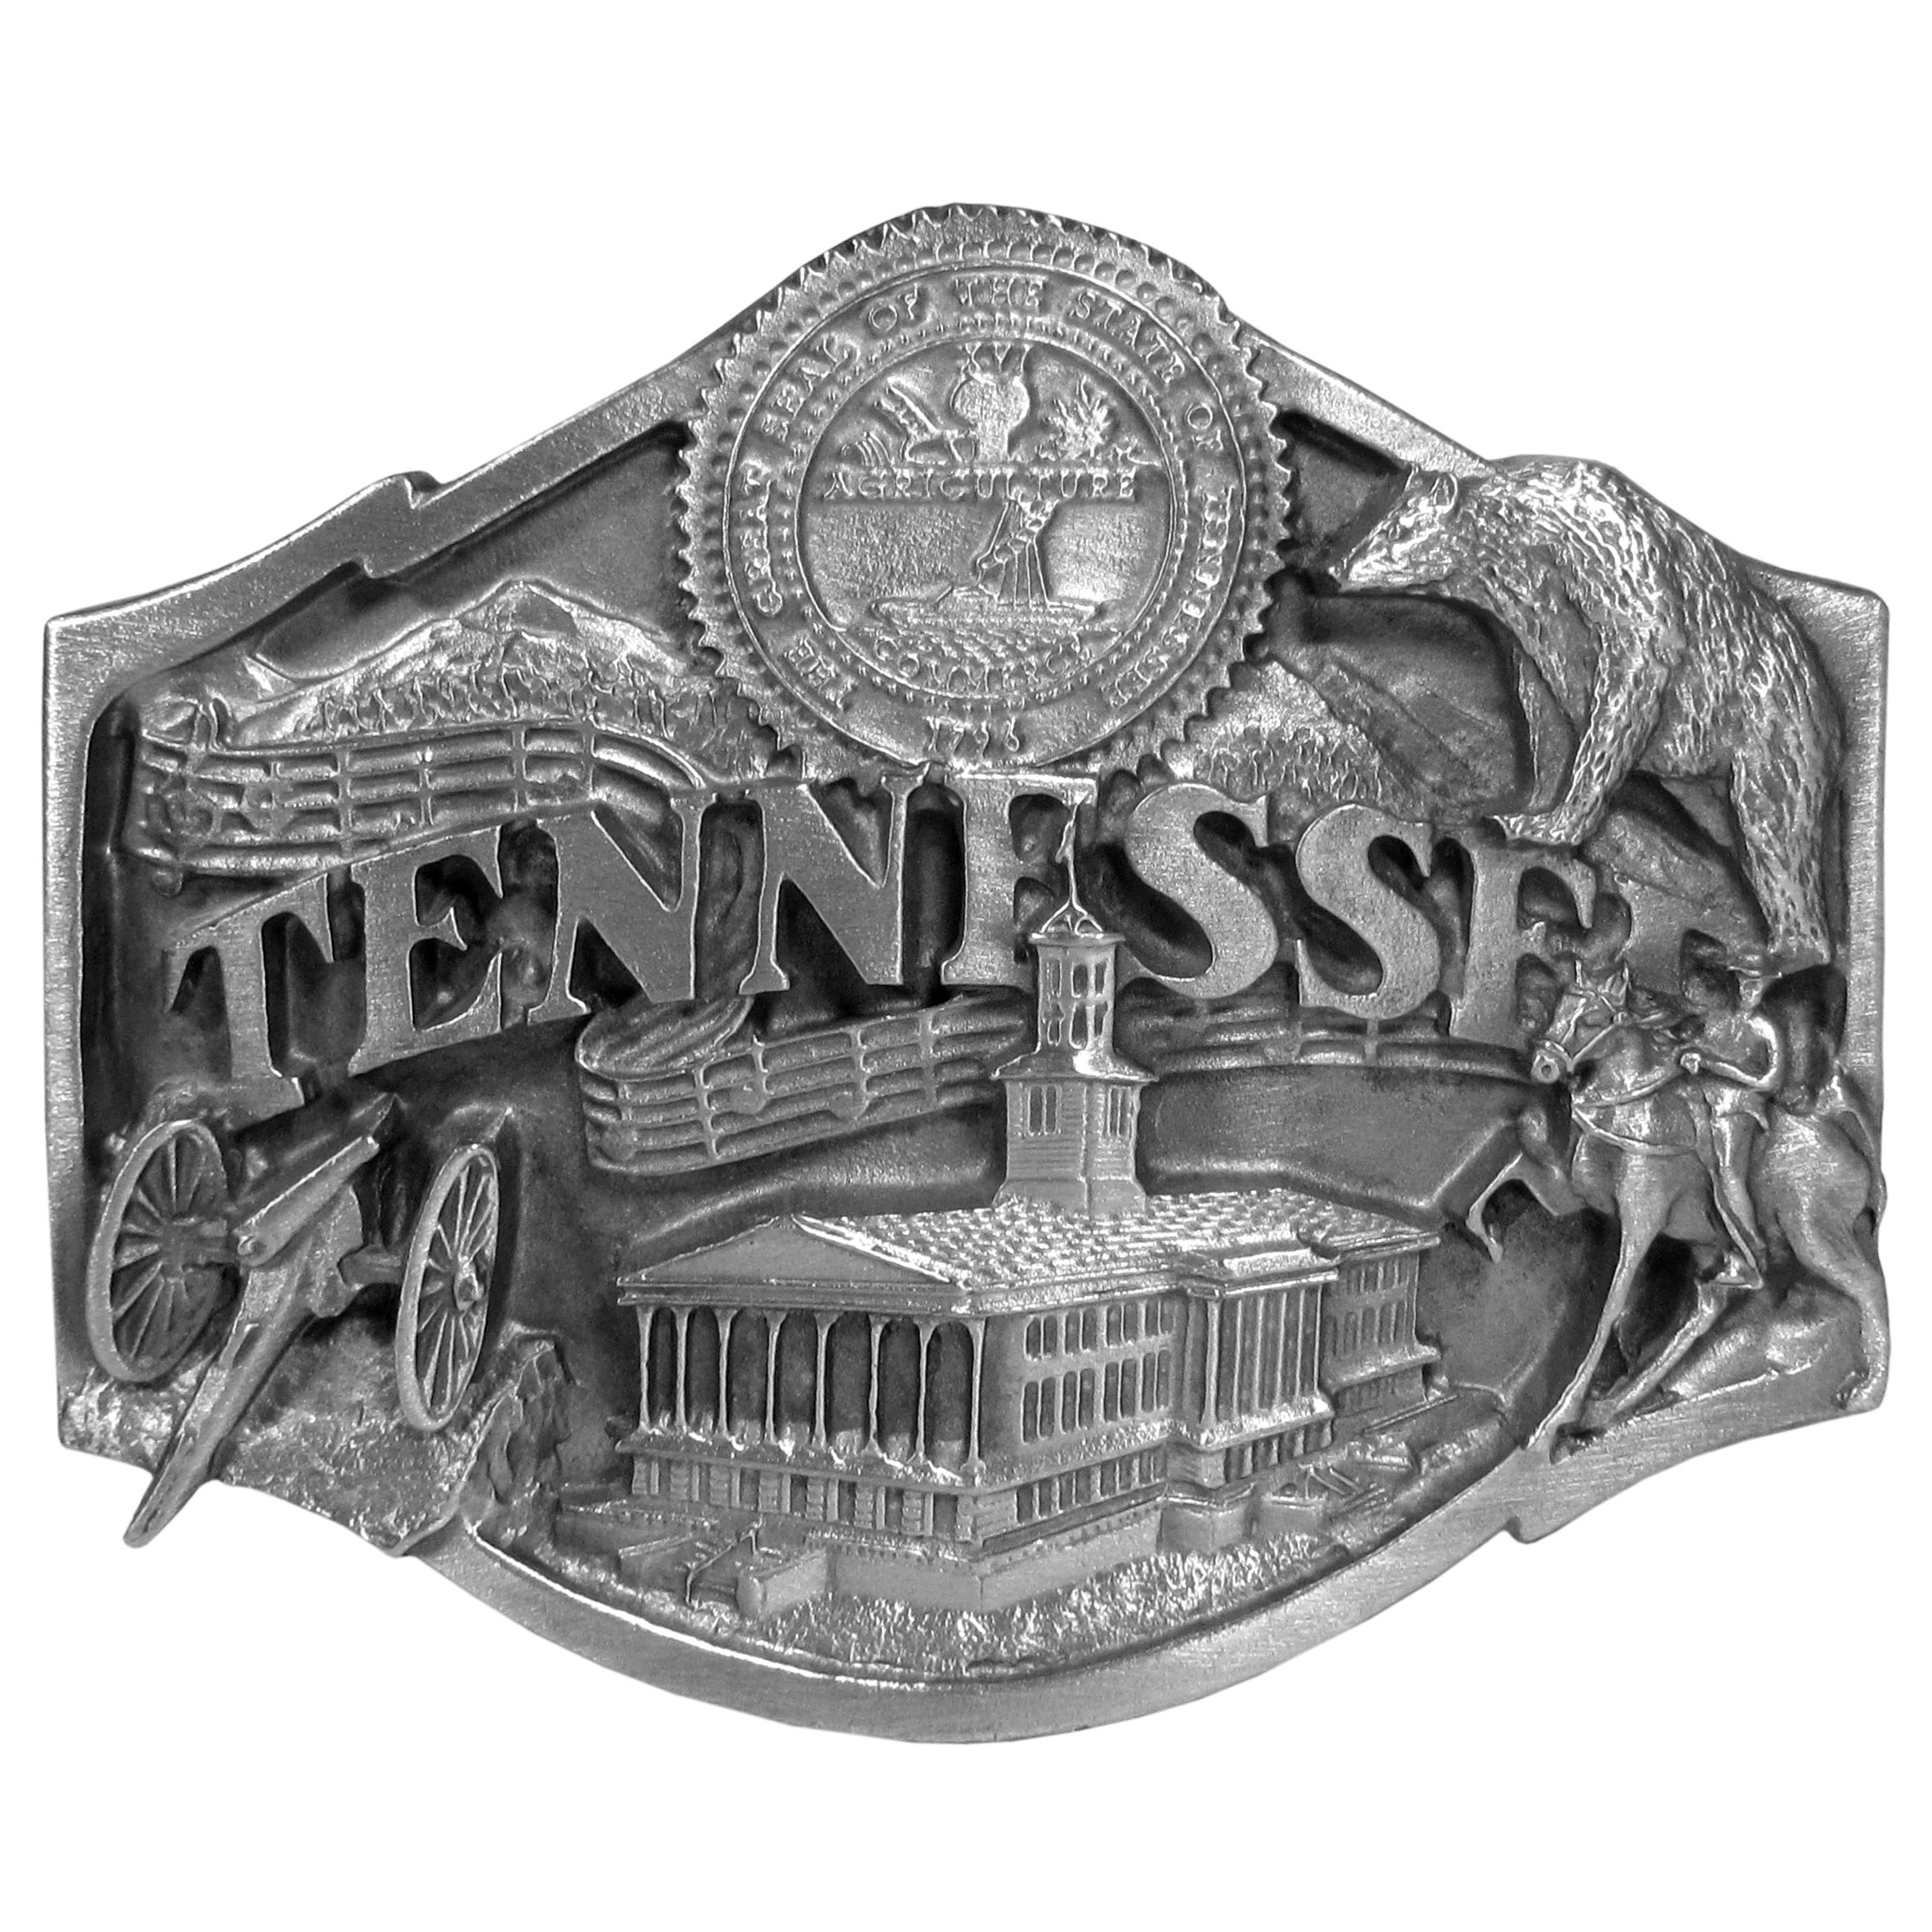 "Tennessee Antiqued Belt Buckle - ""This is a buckle dedicated to the state of Tennessee.  The buckle has images of the state seal, a cannon, a horse and rider, music notes, a black bear, the state capital building and the Smoky Mountains.  This exquisitely carved buckle is made of fully cast metal with a standard bale that fits up to 2"""" belts.  Siskiyou's unique buckle designs often become collector's items and are unequaled with the best craftsmanship.  Made in the USA."""